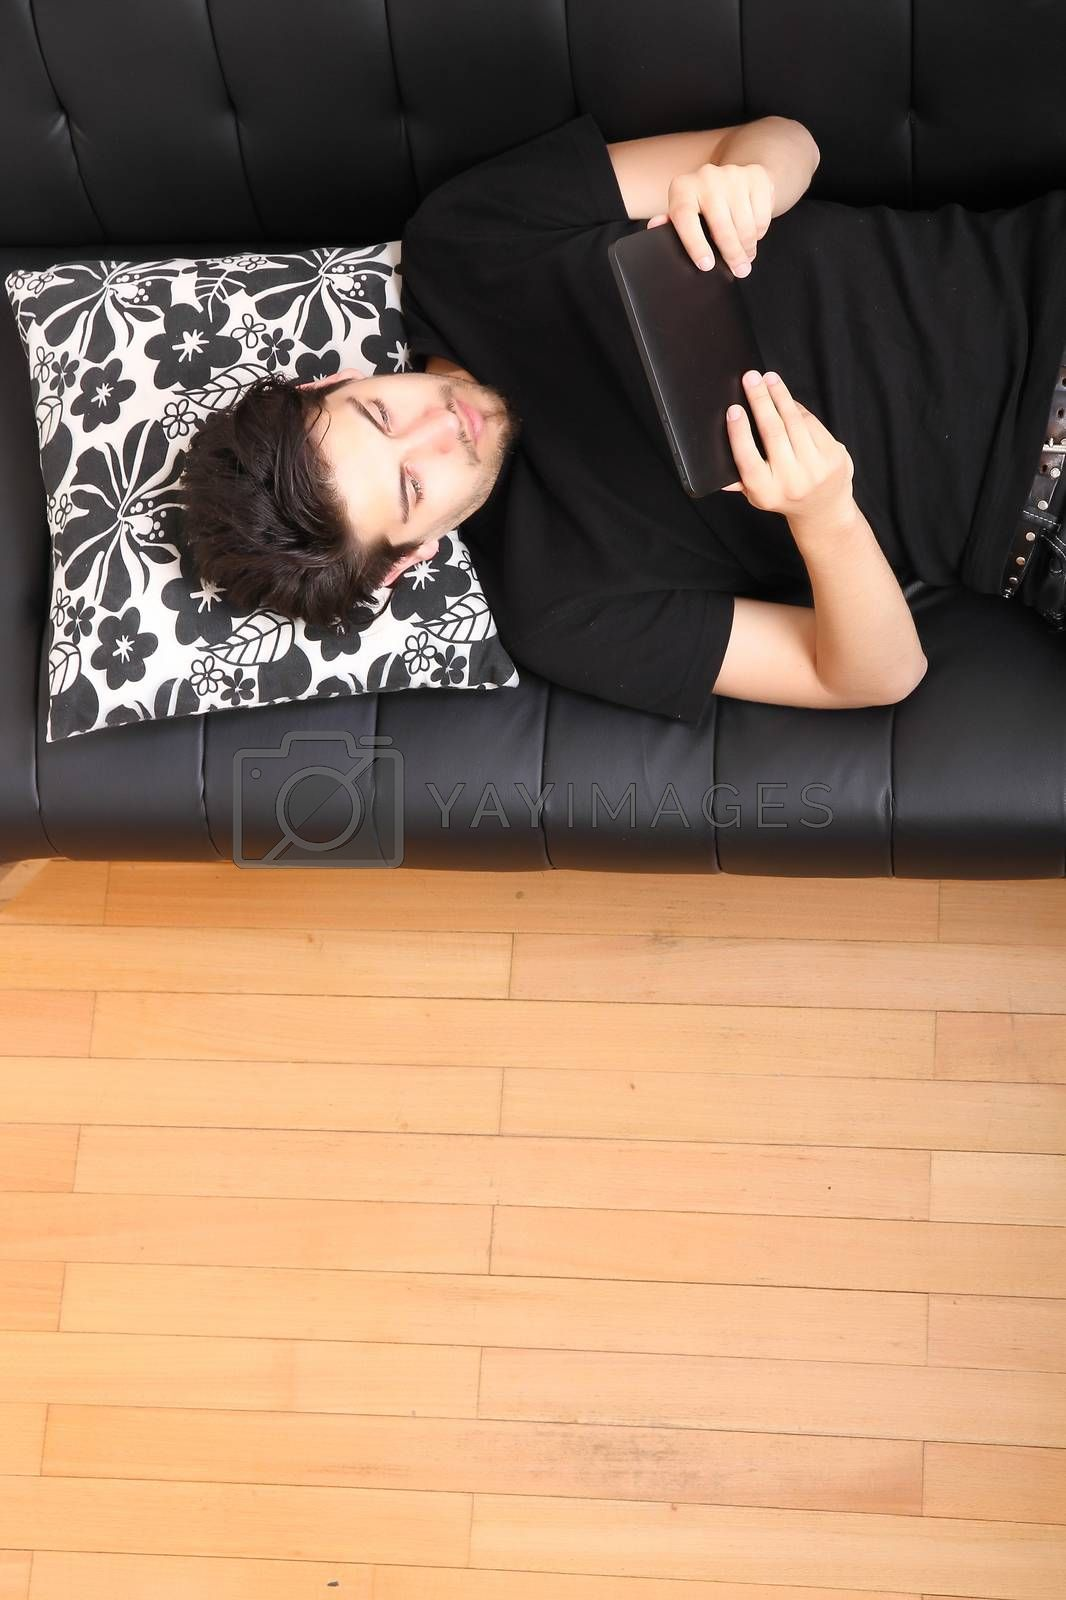 A young hispanic man lying on the sofa holding a Tablet PC.